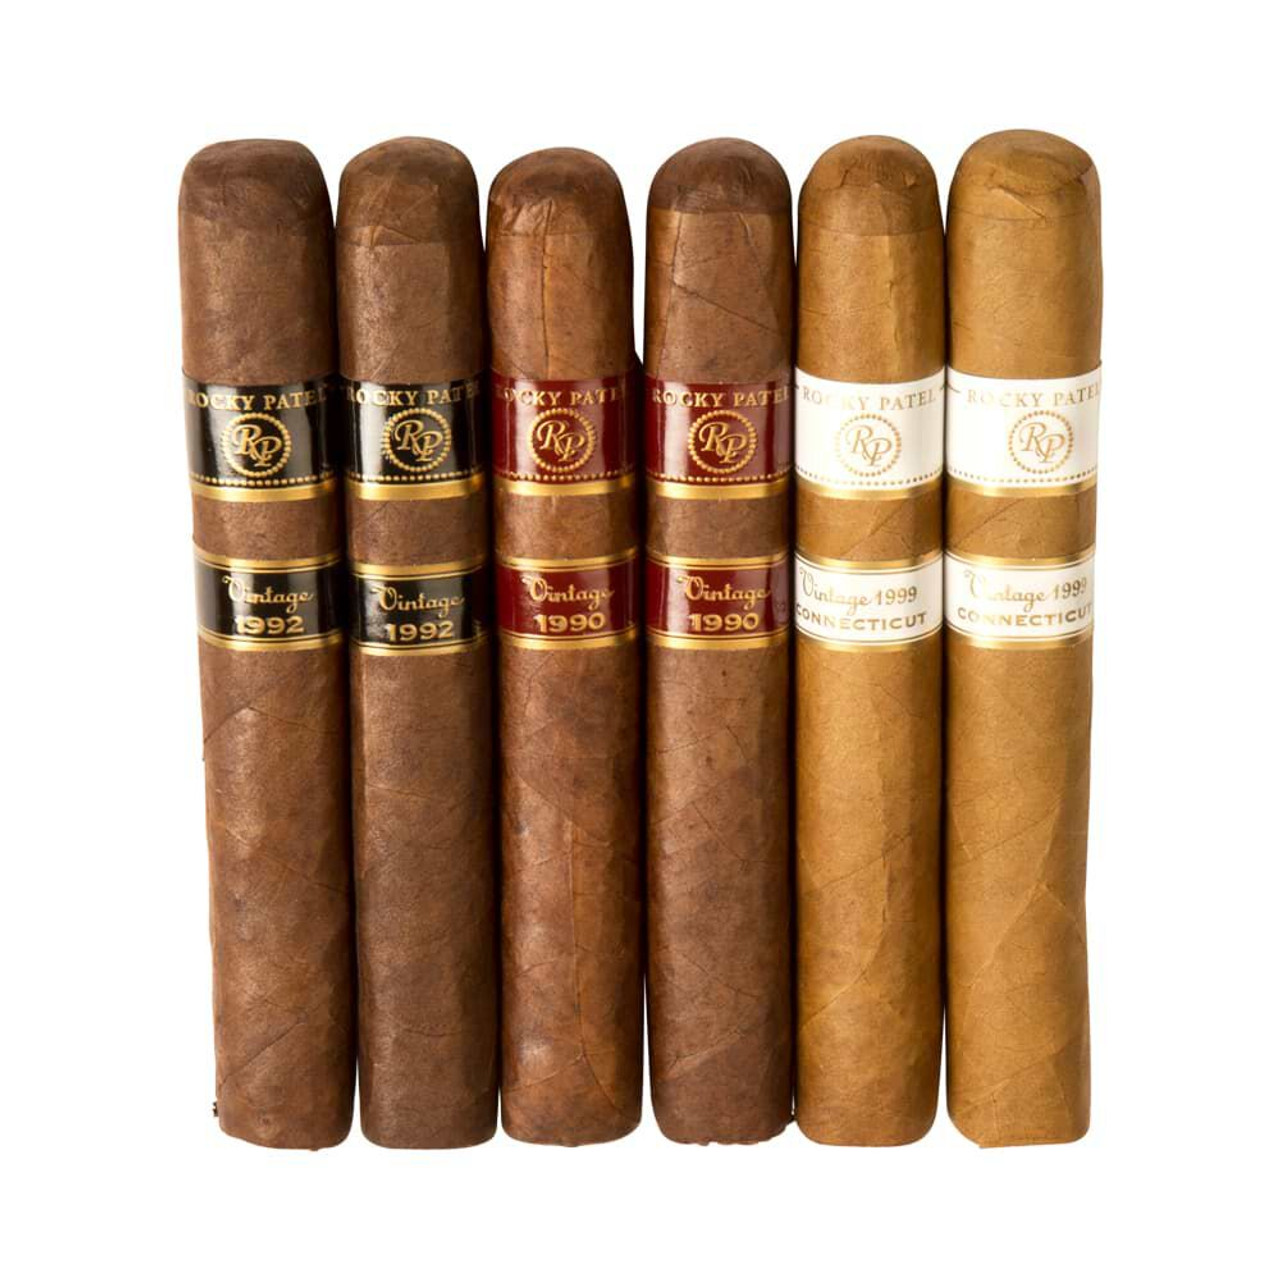 Cigar Samplers Rocky Patel Vintage Holiday Gift Can Cigars - 5.5 x 50 (Canister of 6)